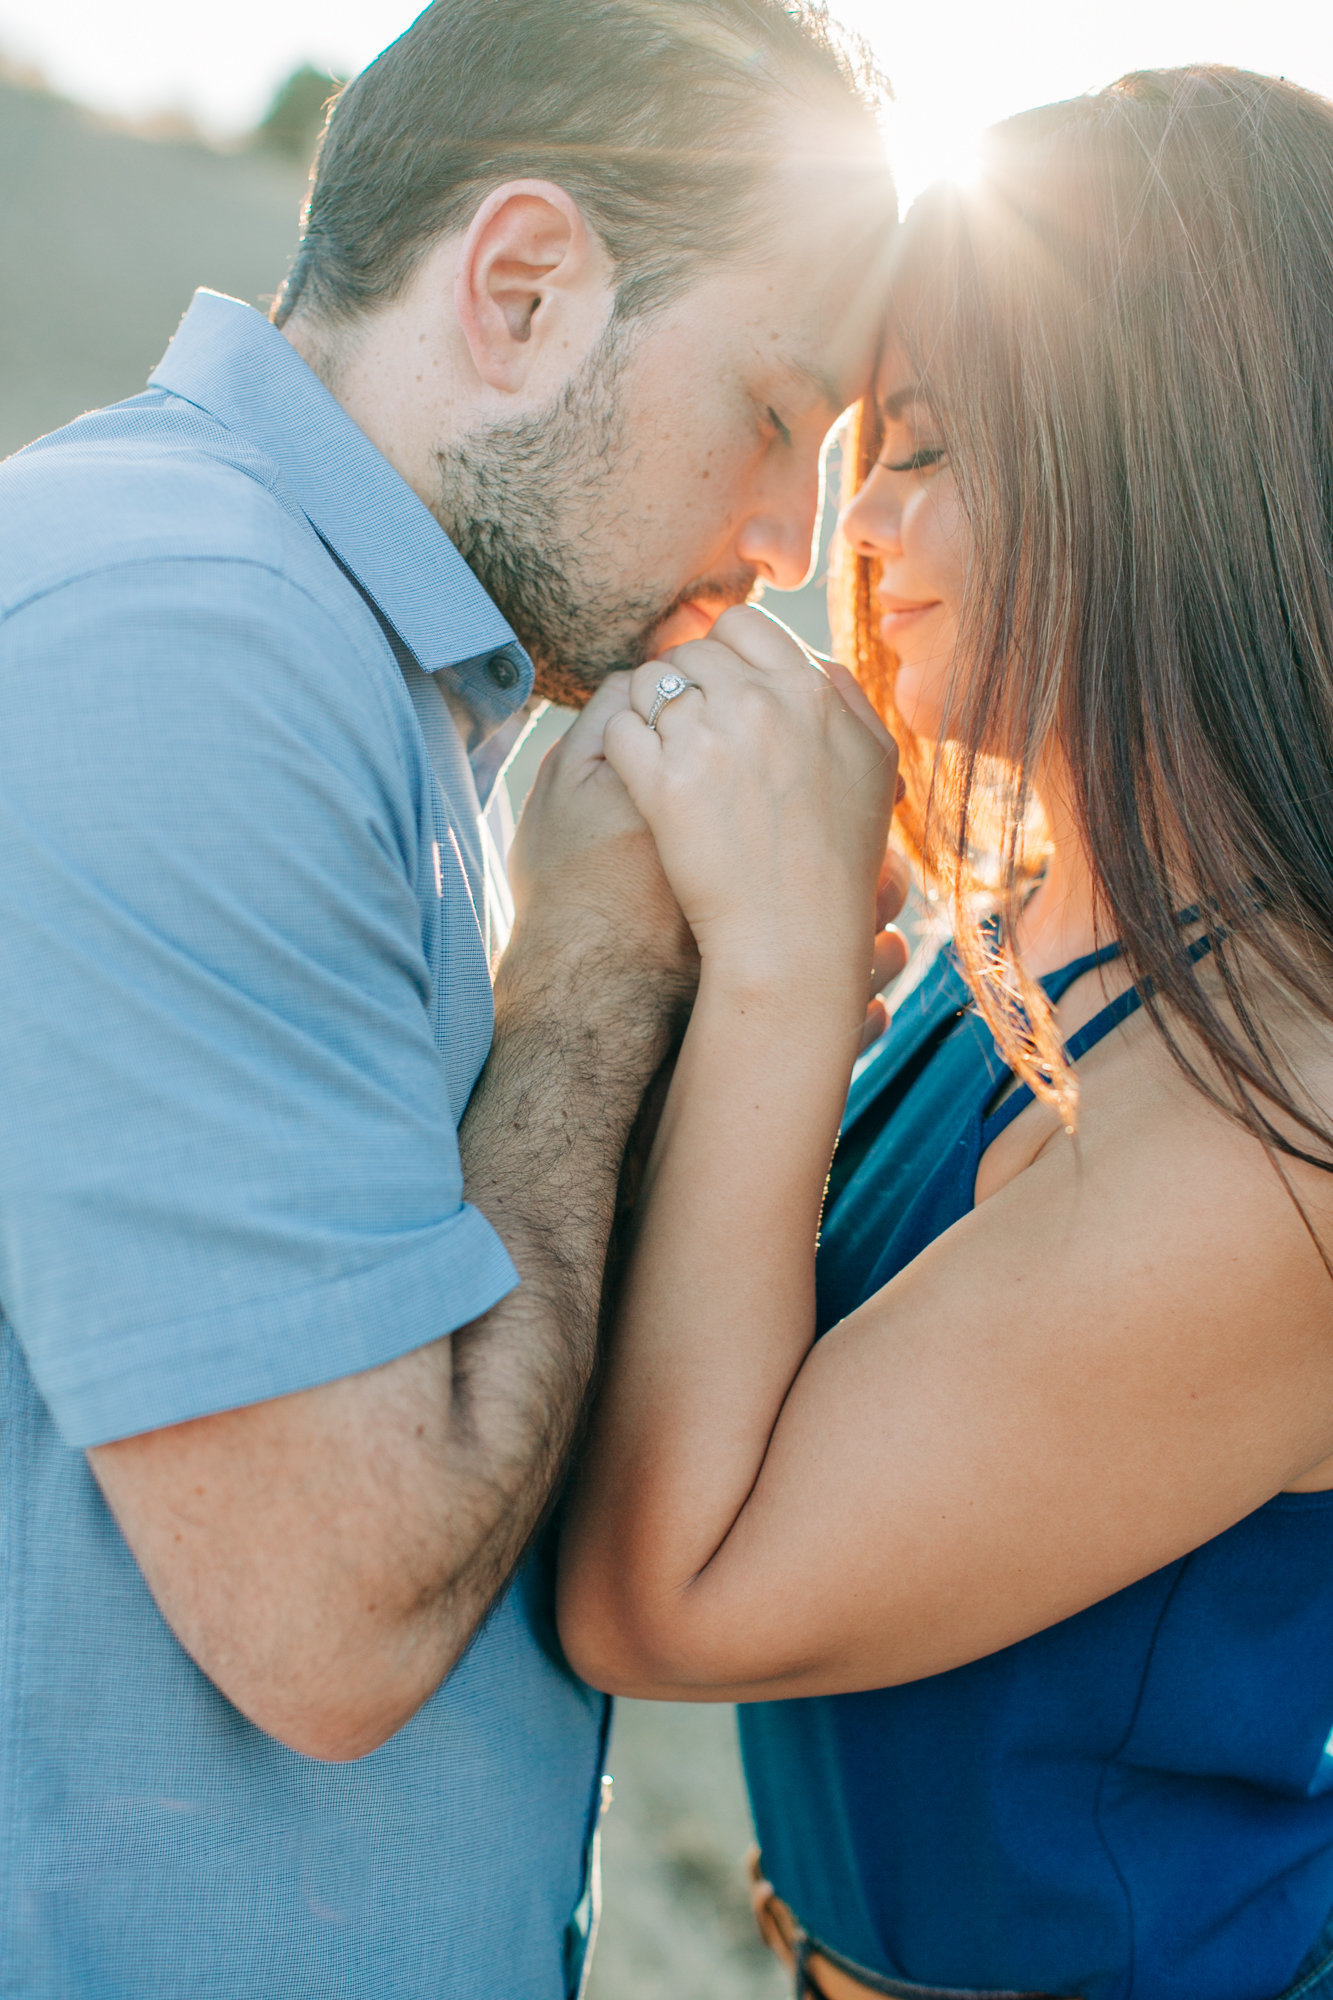 San_Juan_Capistrano_Engagement_Session_Lily_Ro_Photography-6752